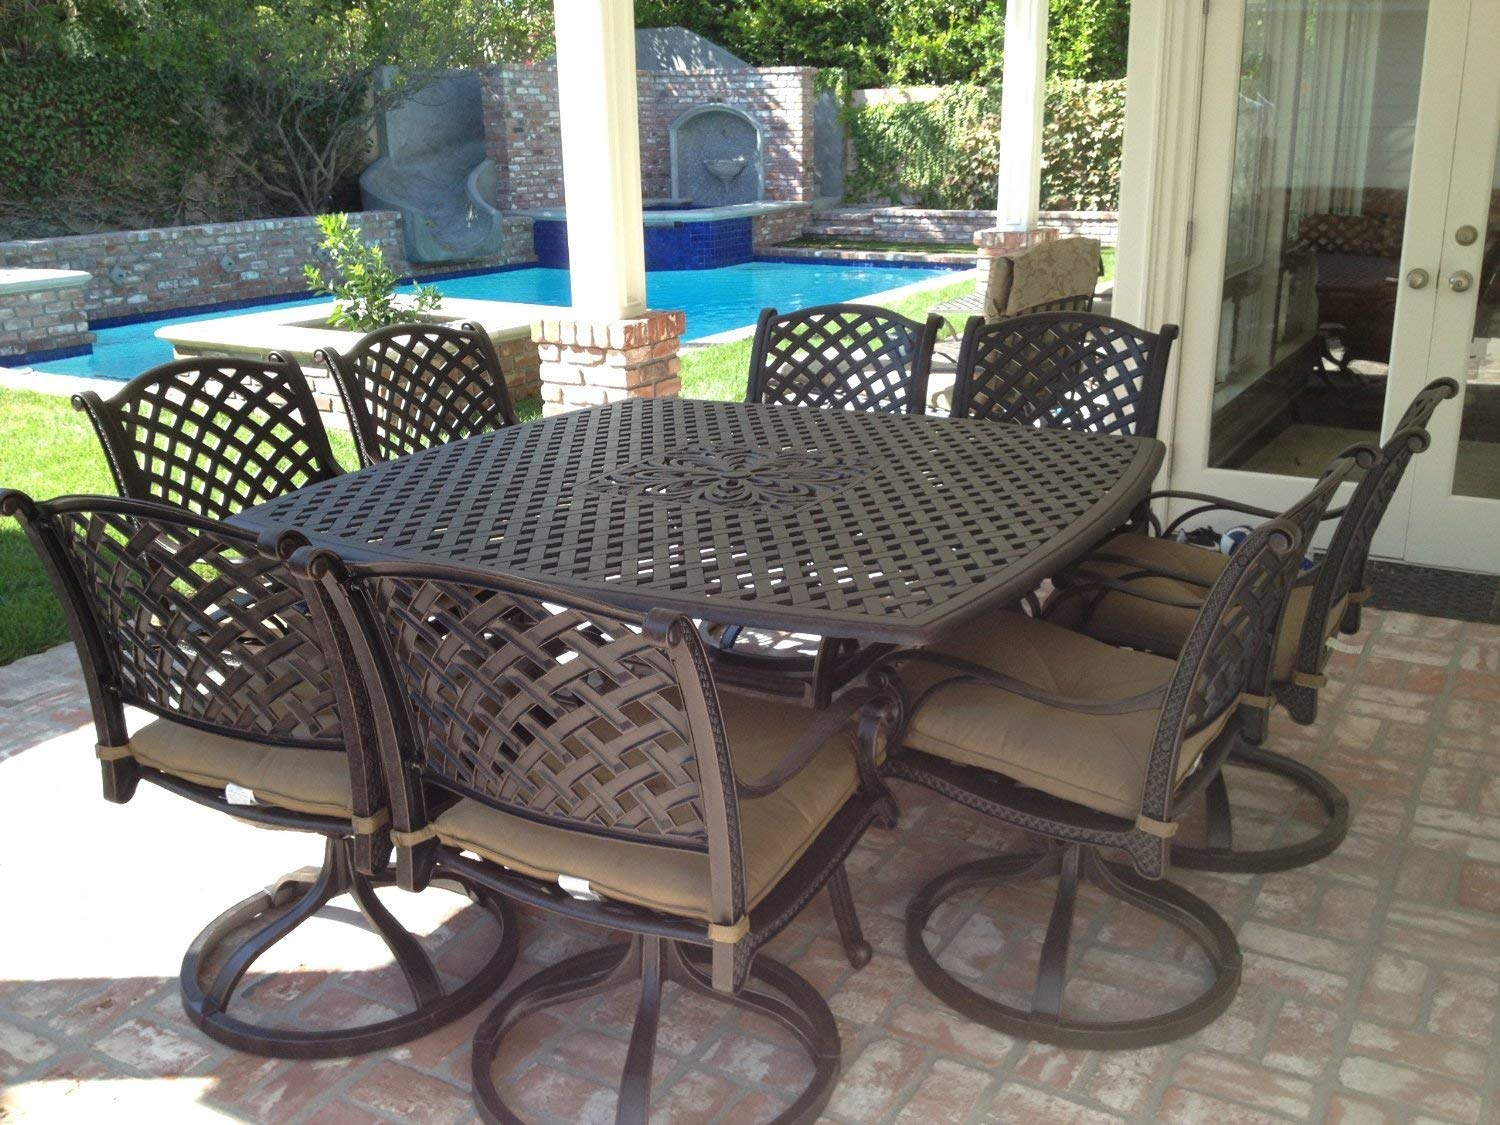 Nassau Cast Aluminum Powder Coated 8-Person Patio Dining Set with Lazy Susan – Antique Bronze